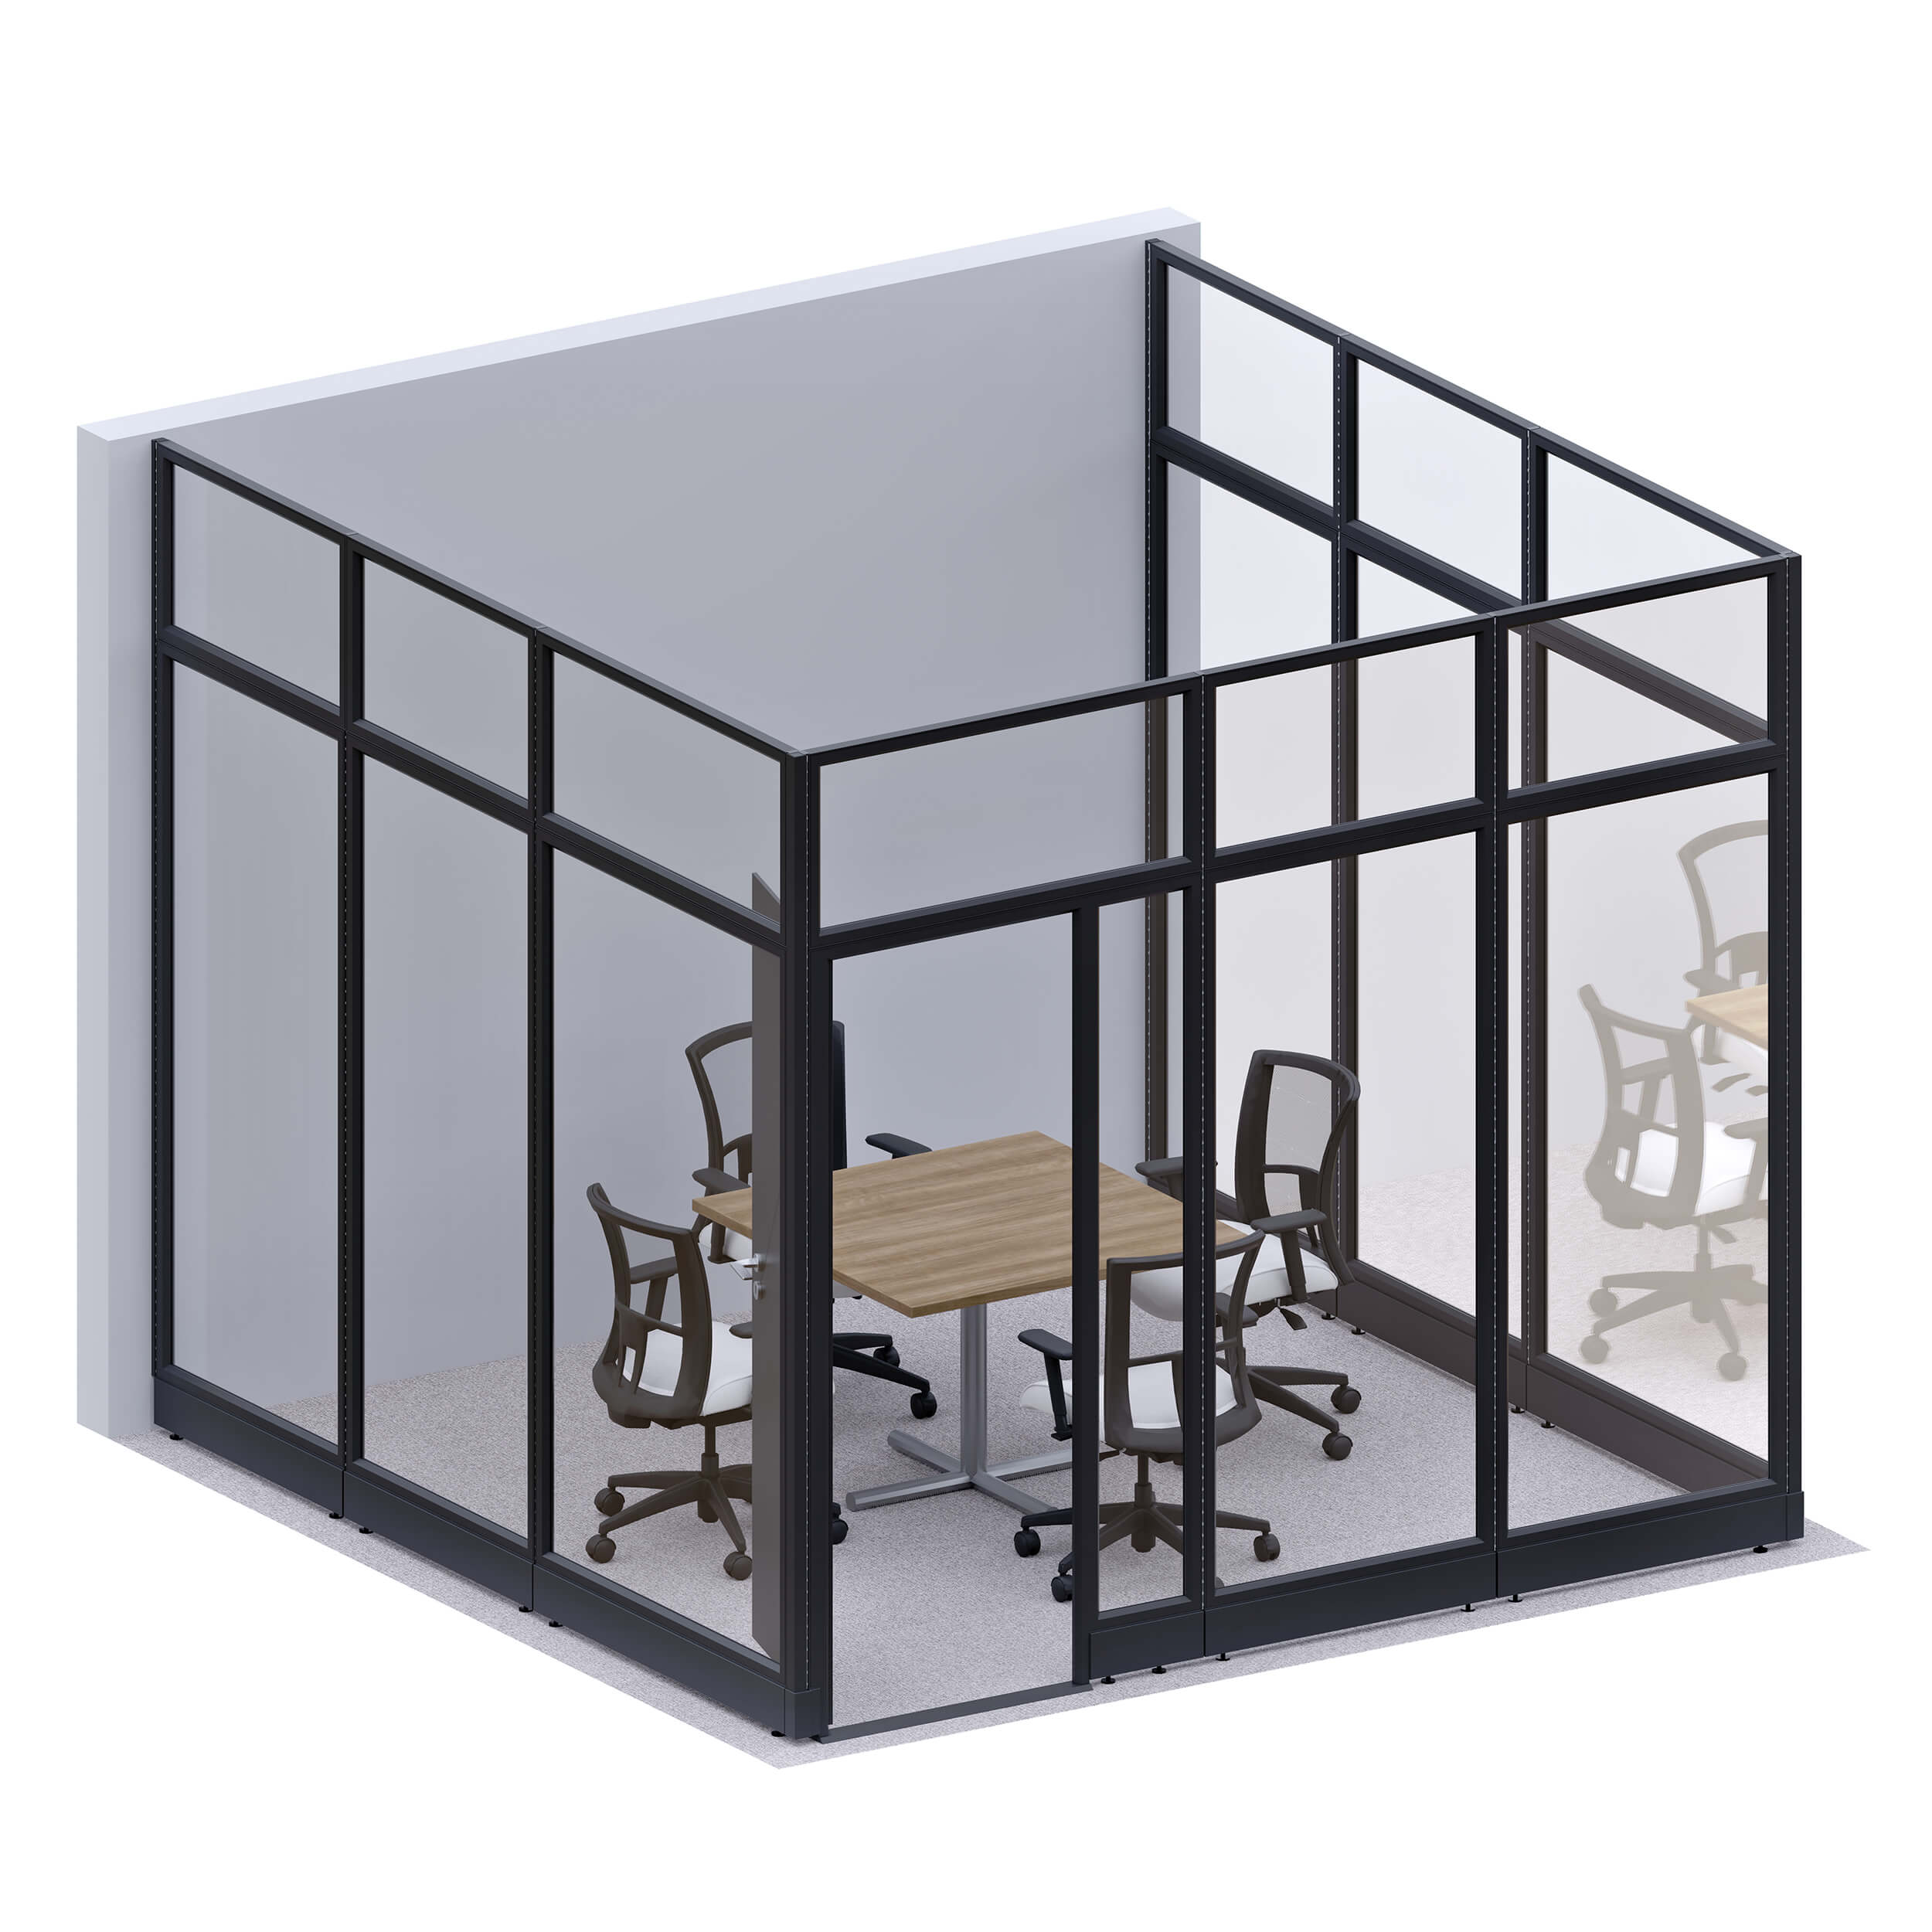 office-walls-glass-wall-conference-room-107h-u-shape.jpg